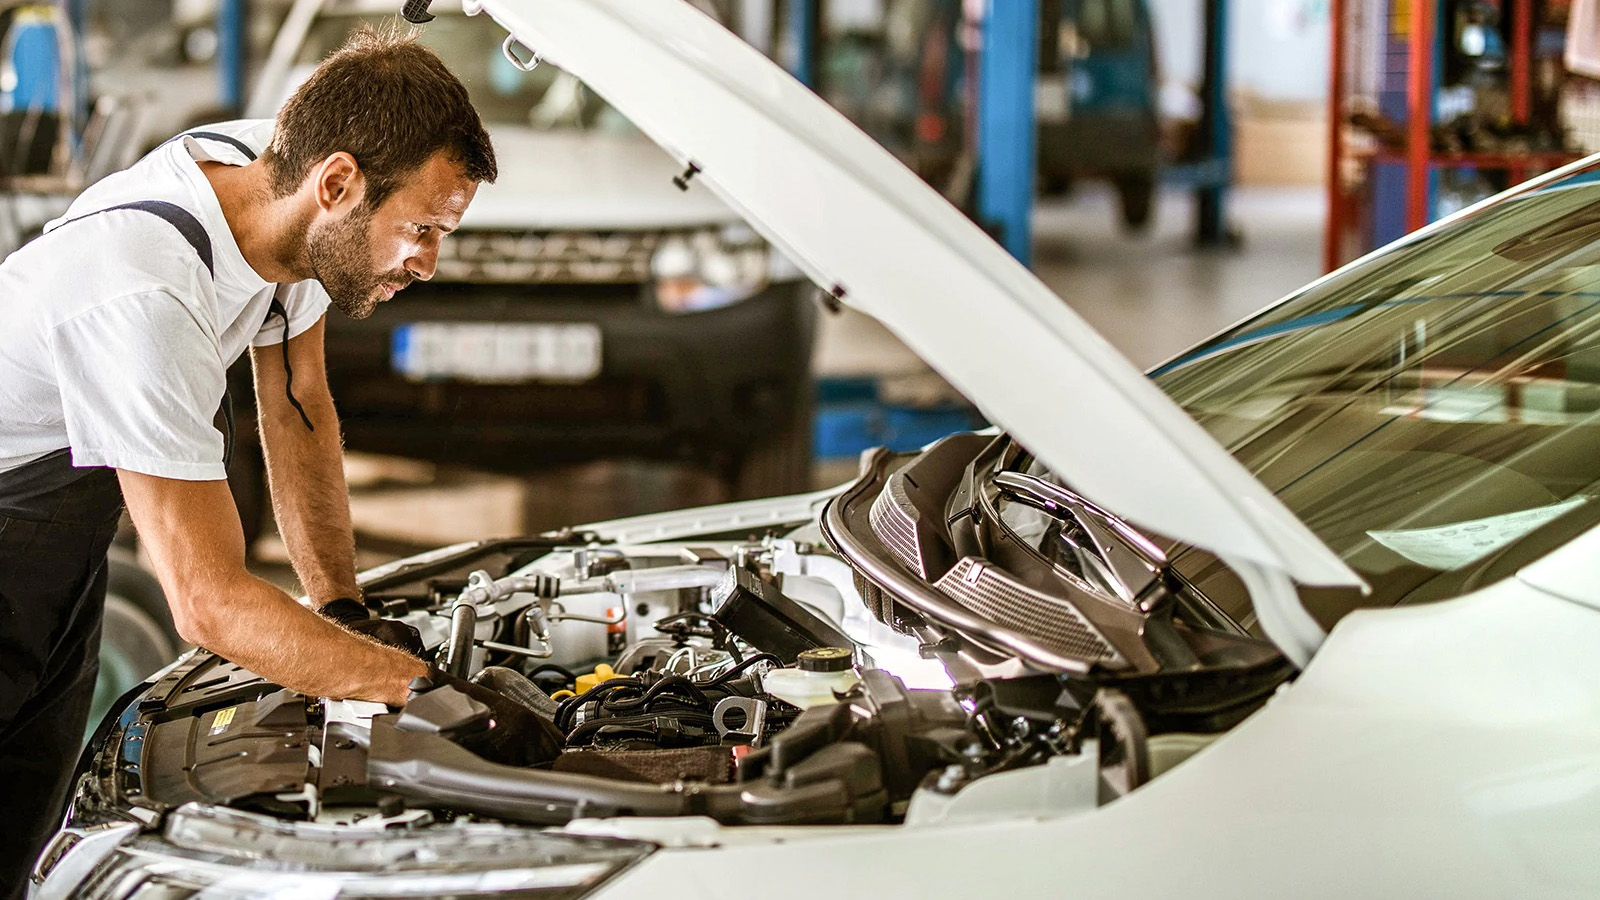 Man working under the hood of a white vehicle.